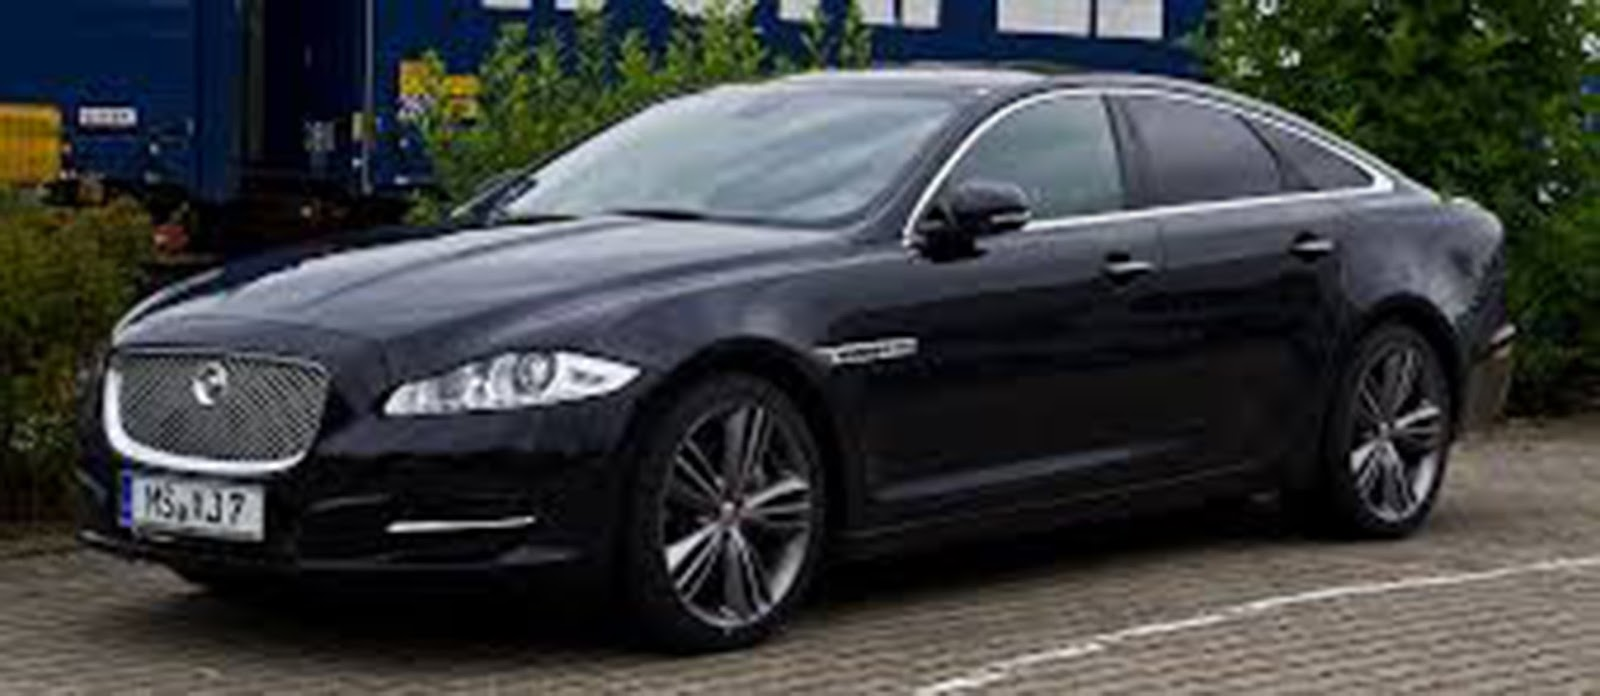 Second On This List Is Jaguar   XJ X351 Which Is A Full Size Luxury Sedan  Launched By The British Car Giant. Calling It Luxurious Will Be An  Understatement ...